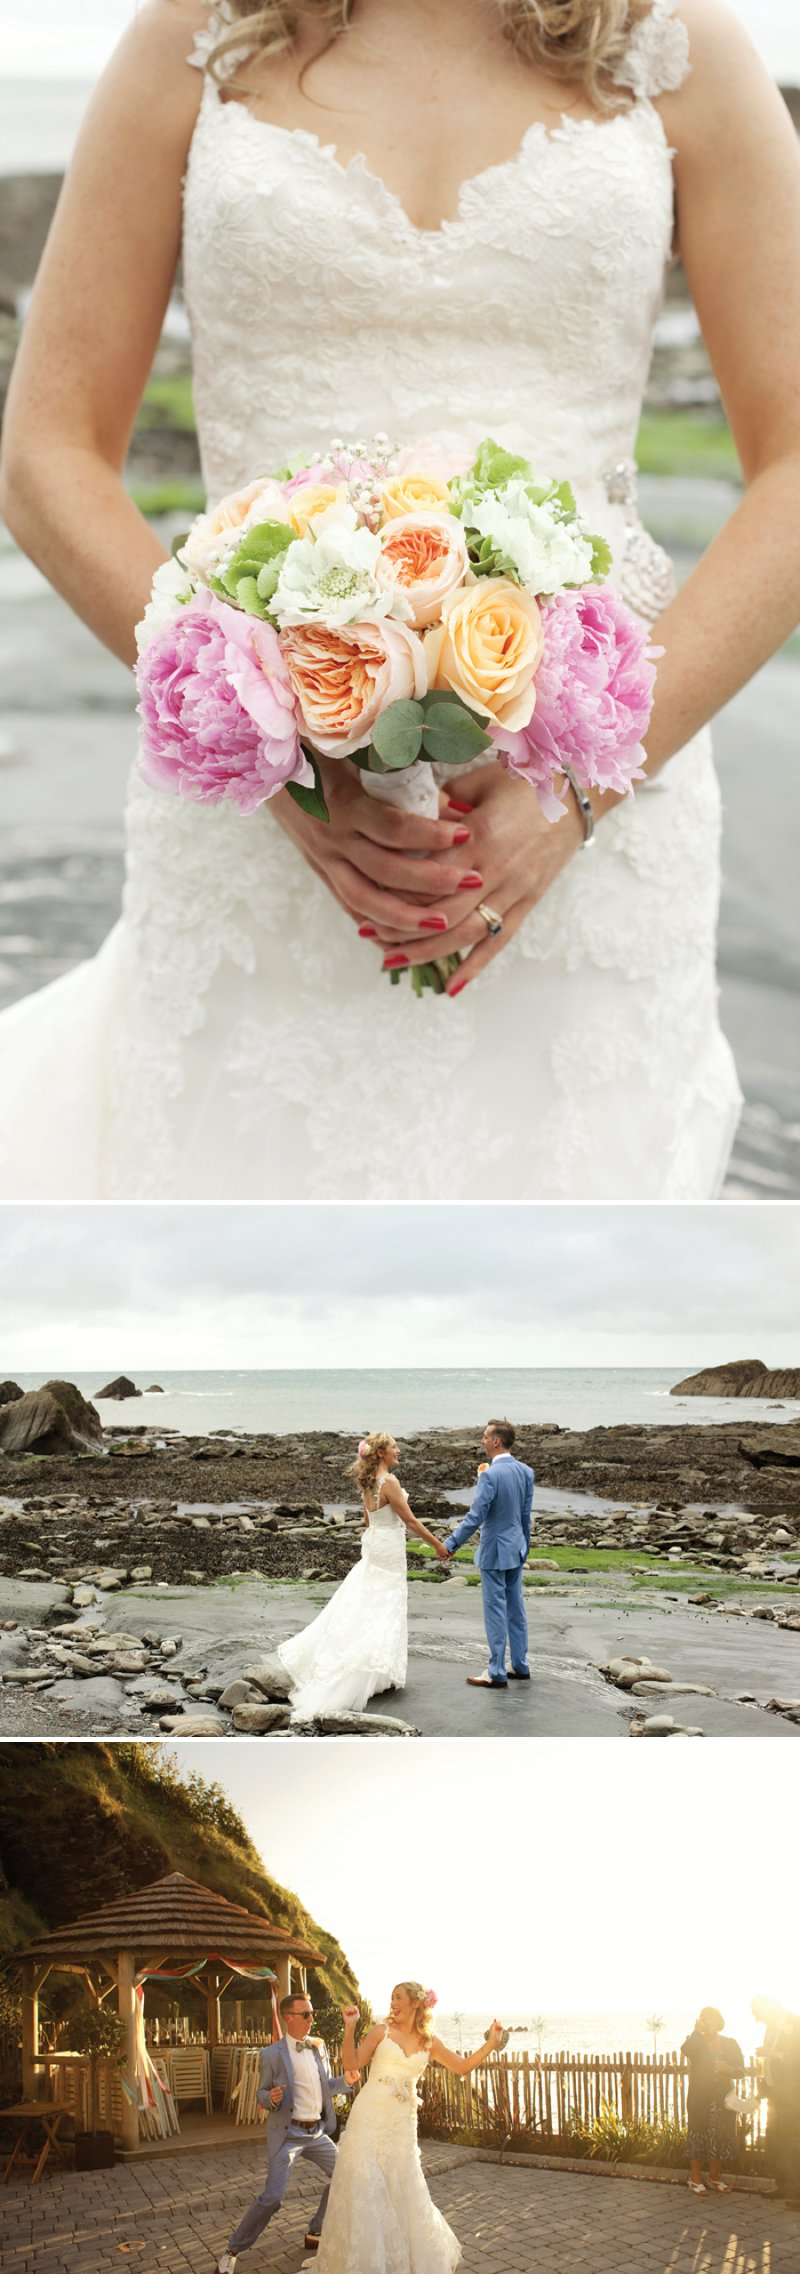 A Fun Filled Wedding At Tunnels Beaches Devon With An Outdoor Ceremony And Bride In Diana By Enzoani With Groom In Light Blue Suit And Bridesmaids In Red Candy Striped Dresses From Jack Wills 1